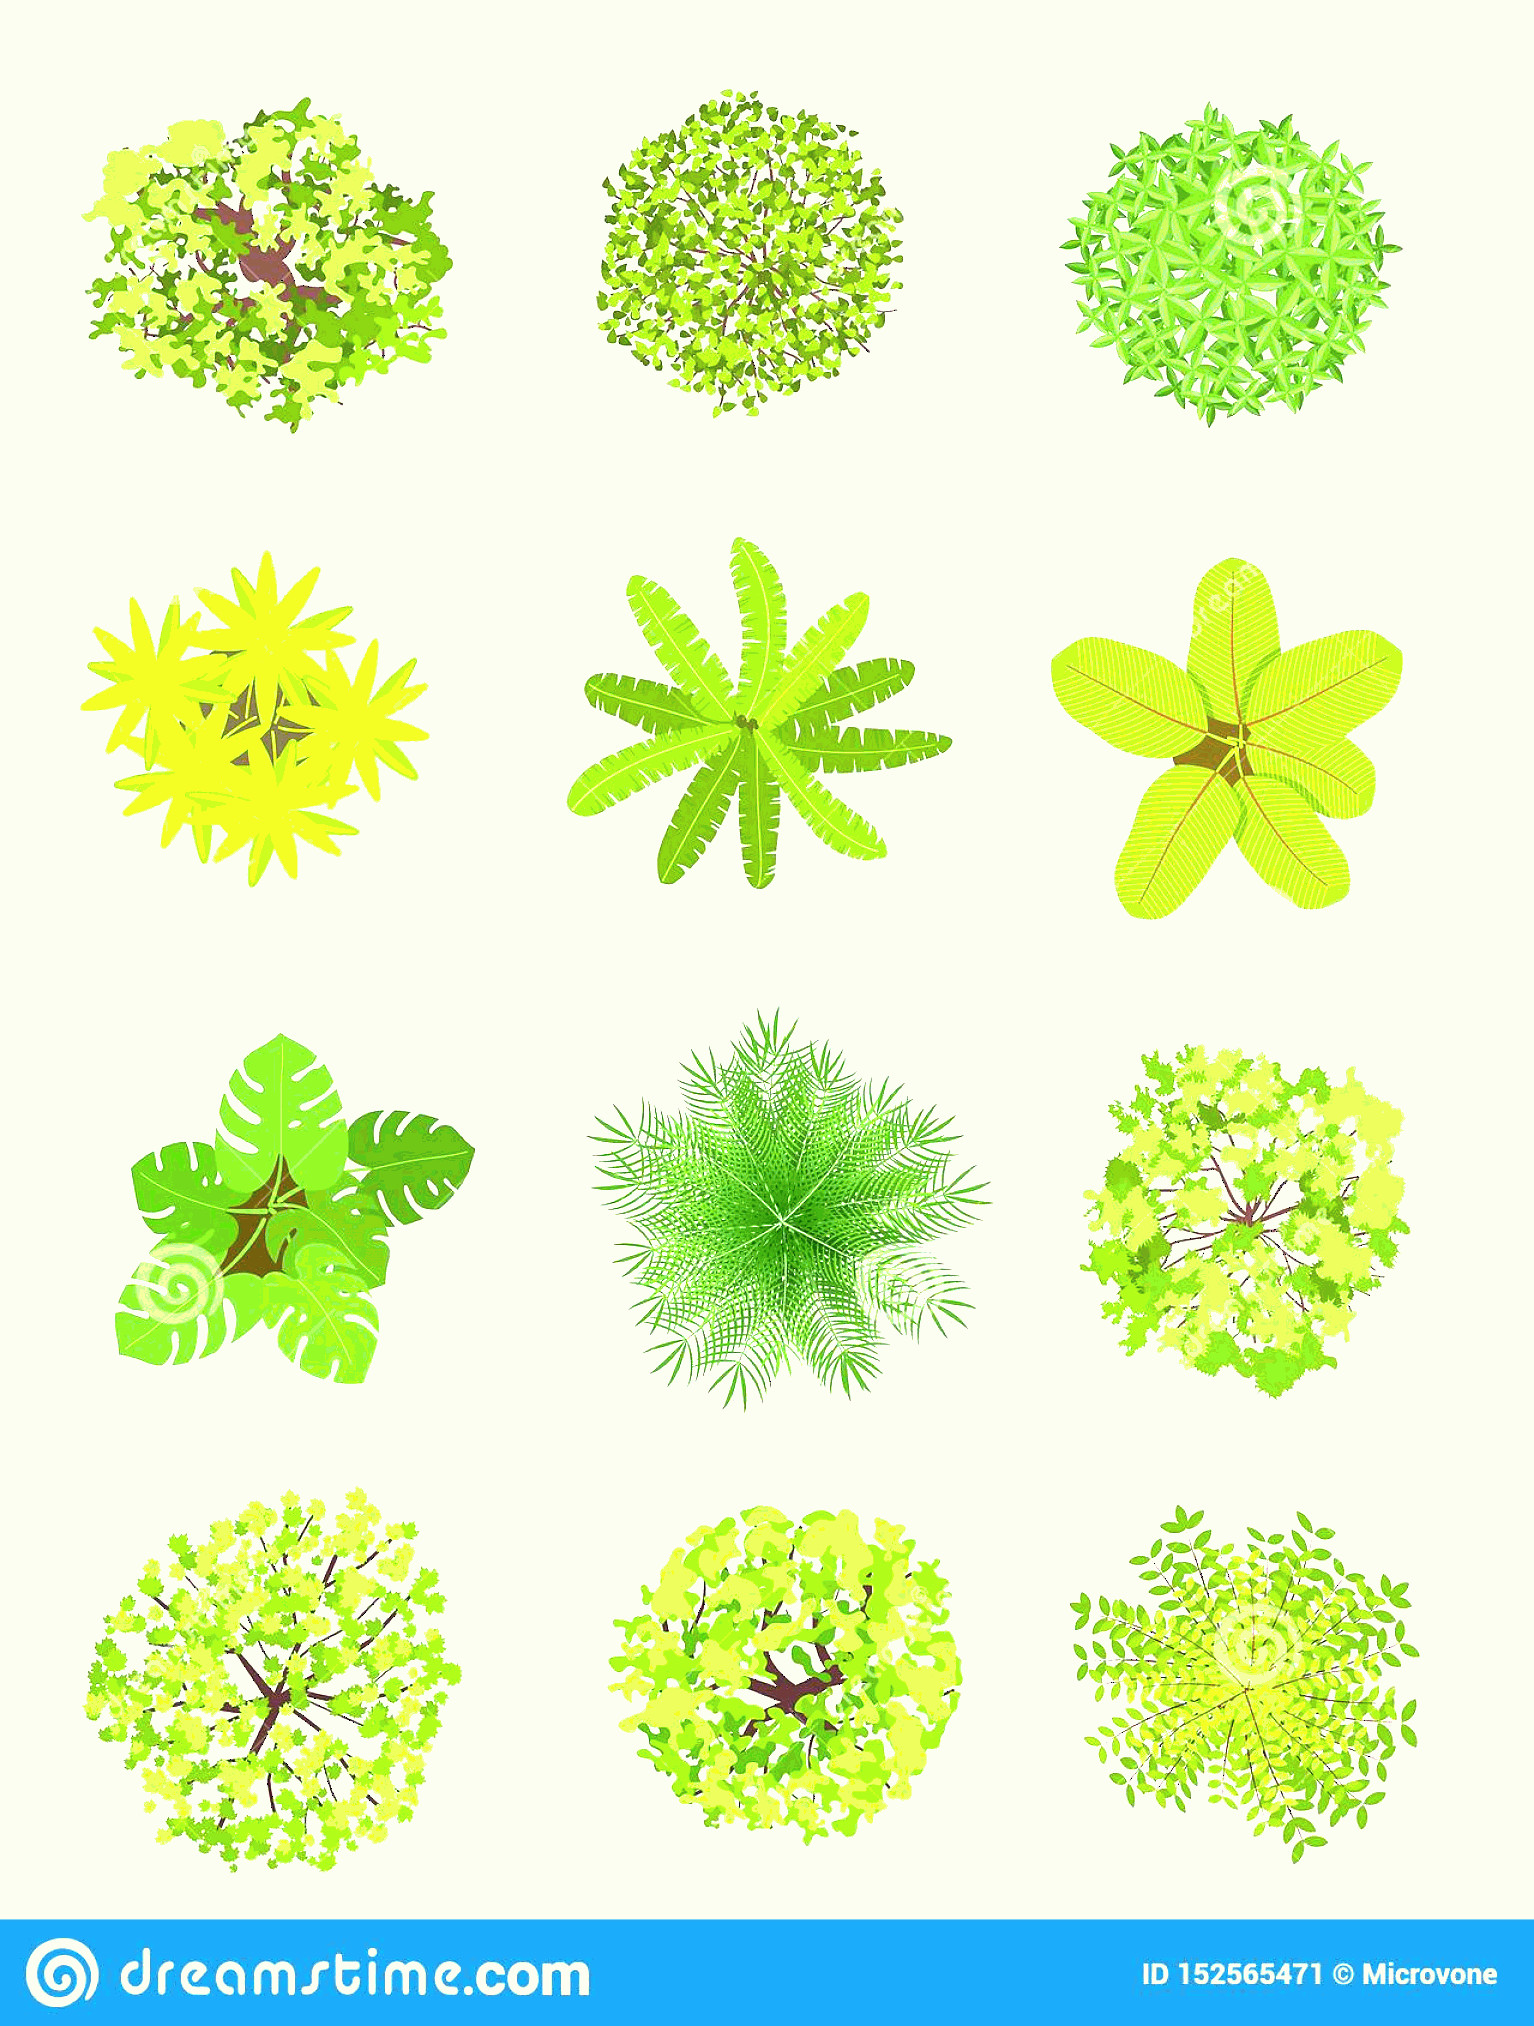 Vector Tree Symbols Plan: Top View Tree Landscape Plan Trees Leaves Bushes Garden Planting Vector Isolated Design Elements White Image